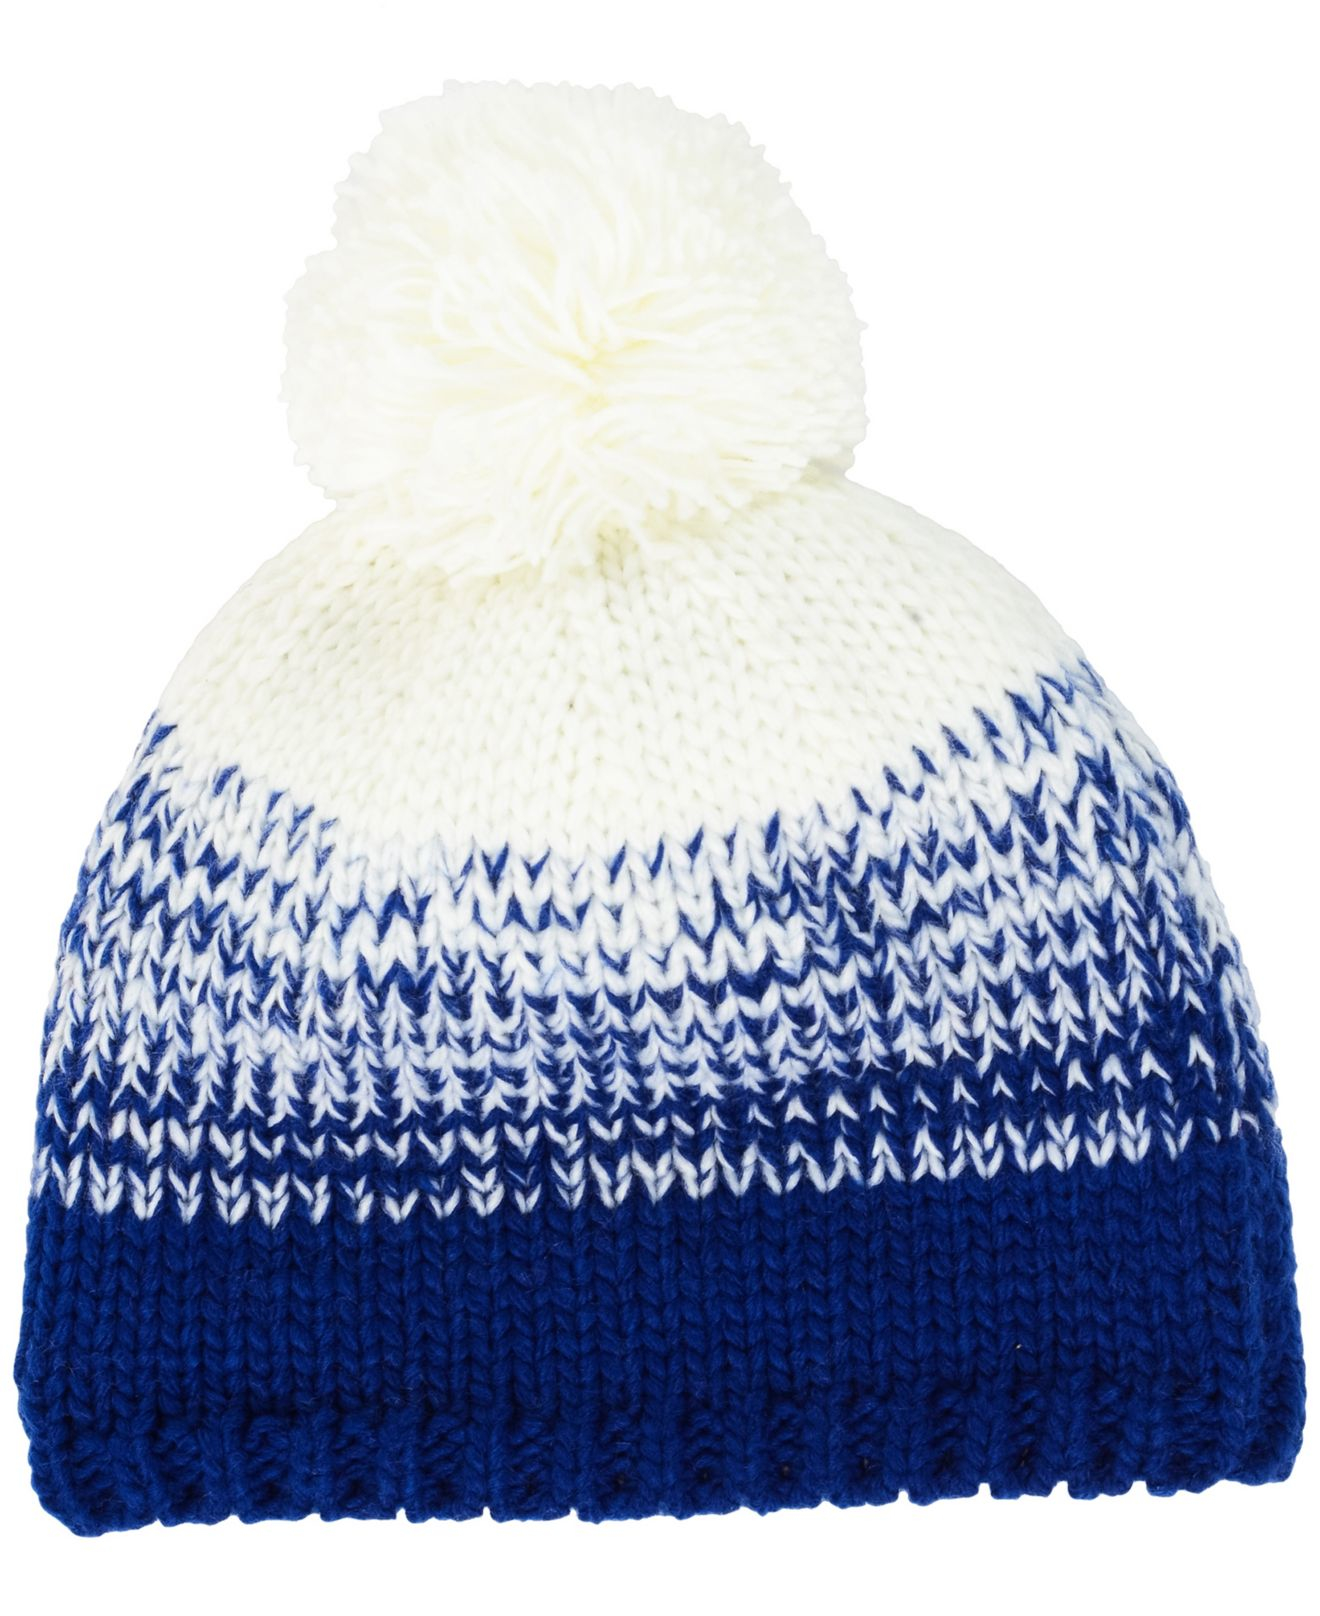 Lyst - KTZ Women s Indianapolis Colts Polar Dust Knit Hat in White 567c83db4